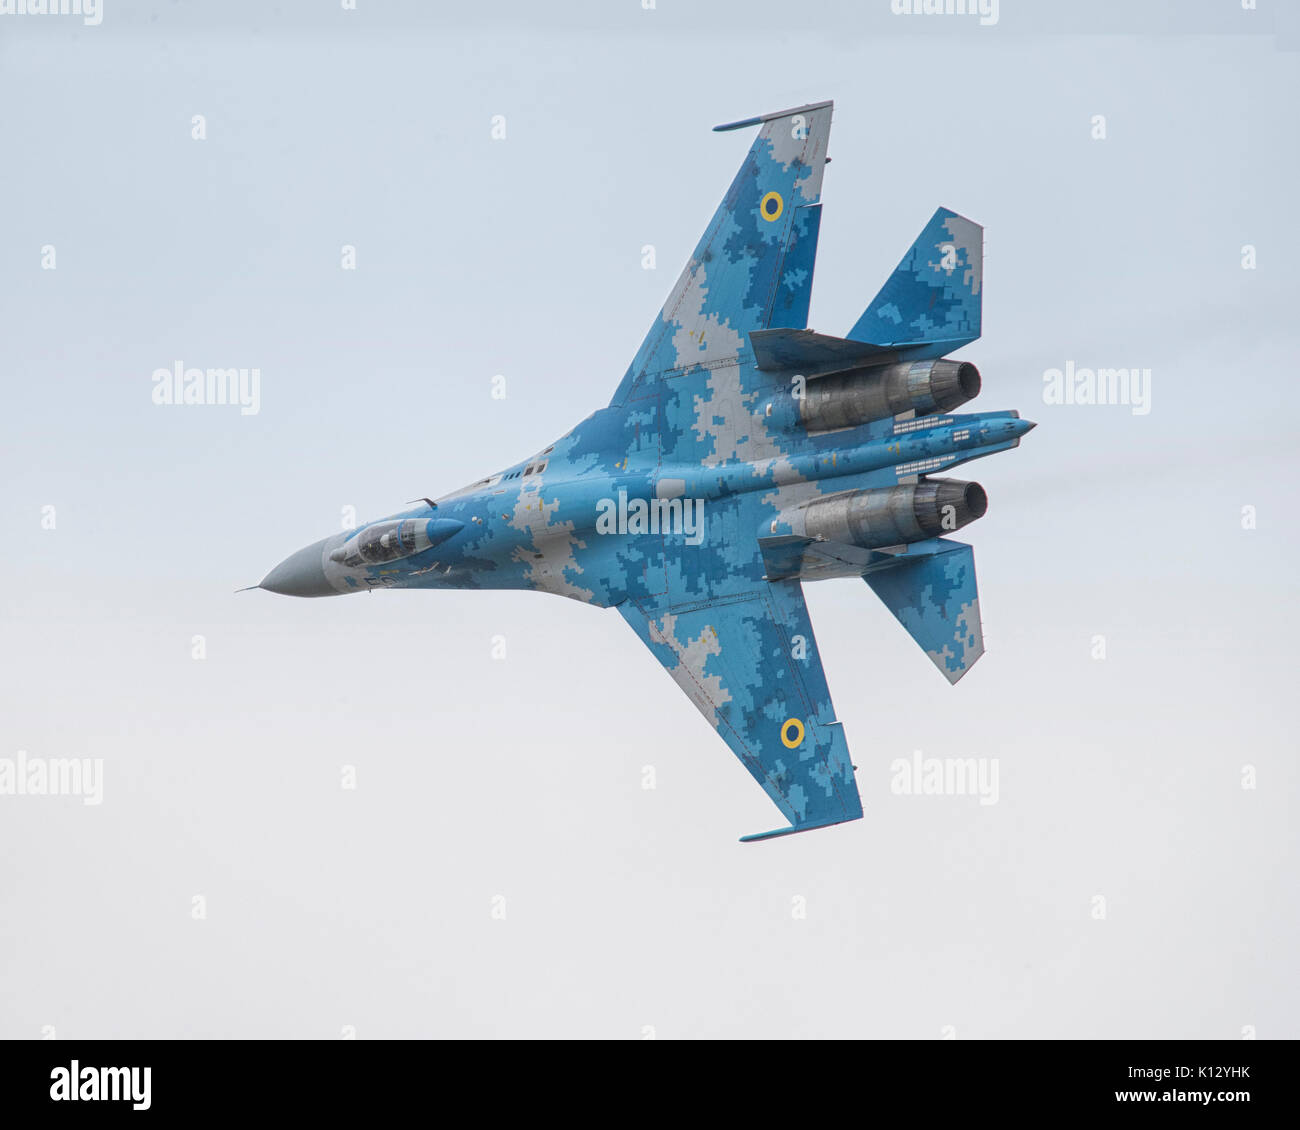 Ukranian Air Force Su-27 Flanker demonstration jet fighter flying at the 2017 Royal International Air Tattoo - Stock Image